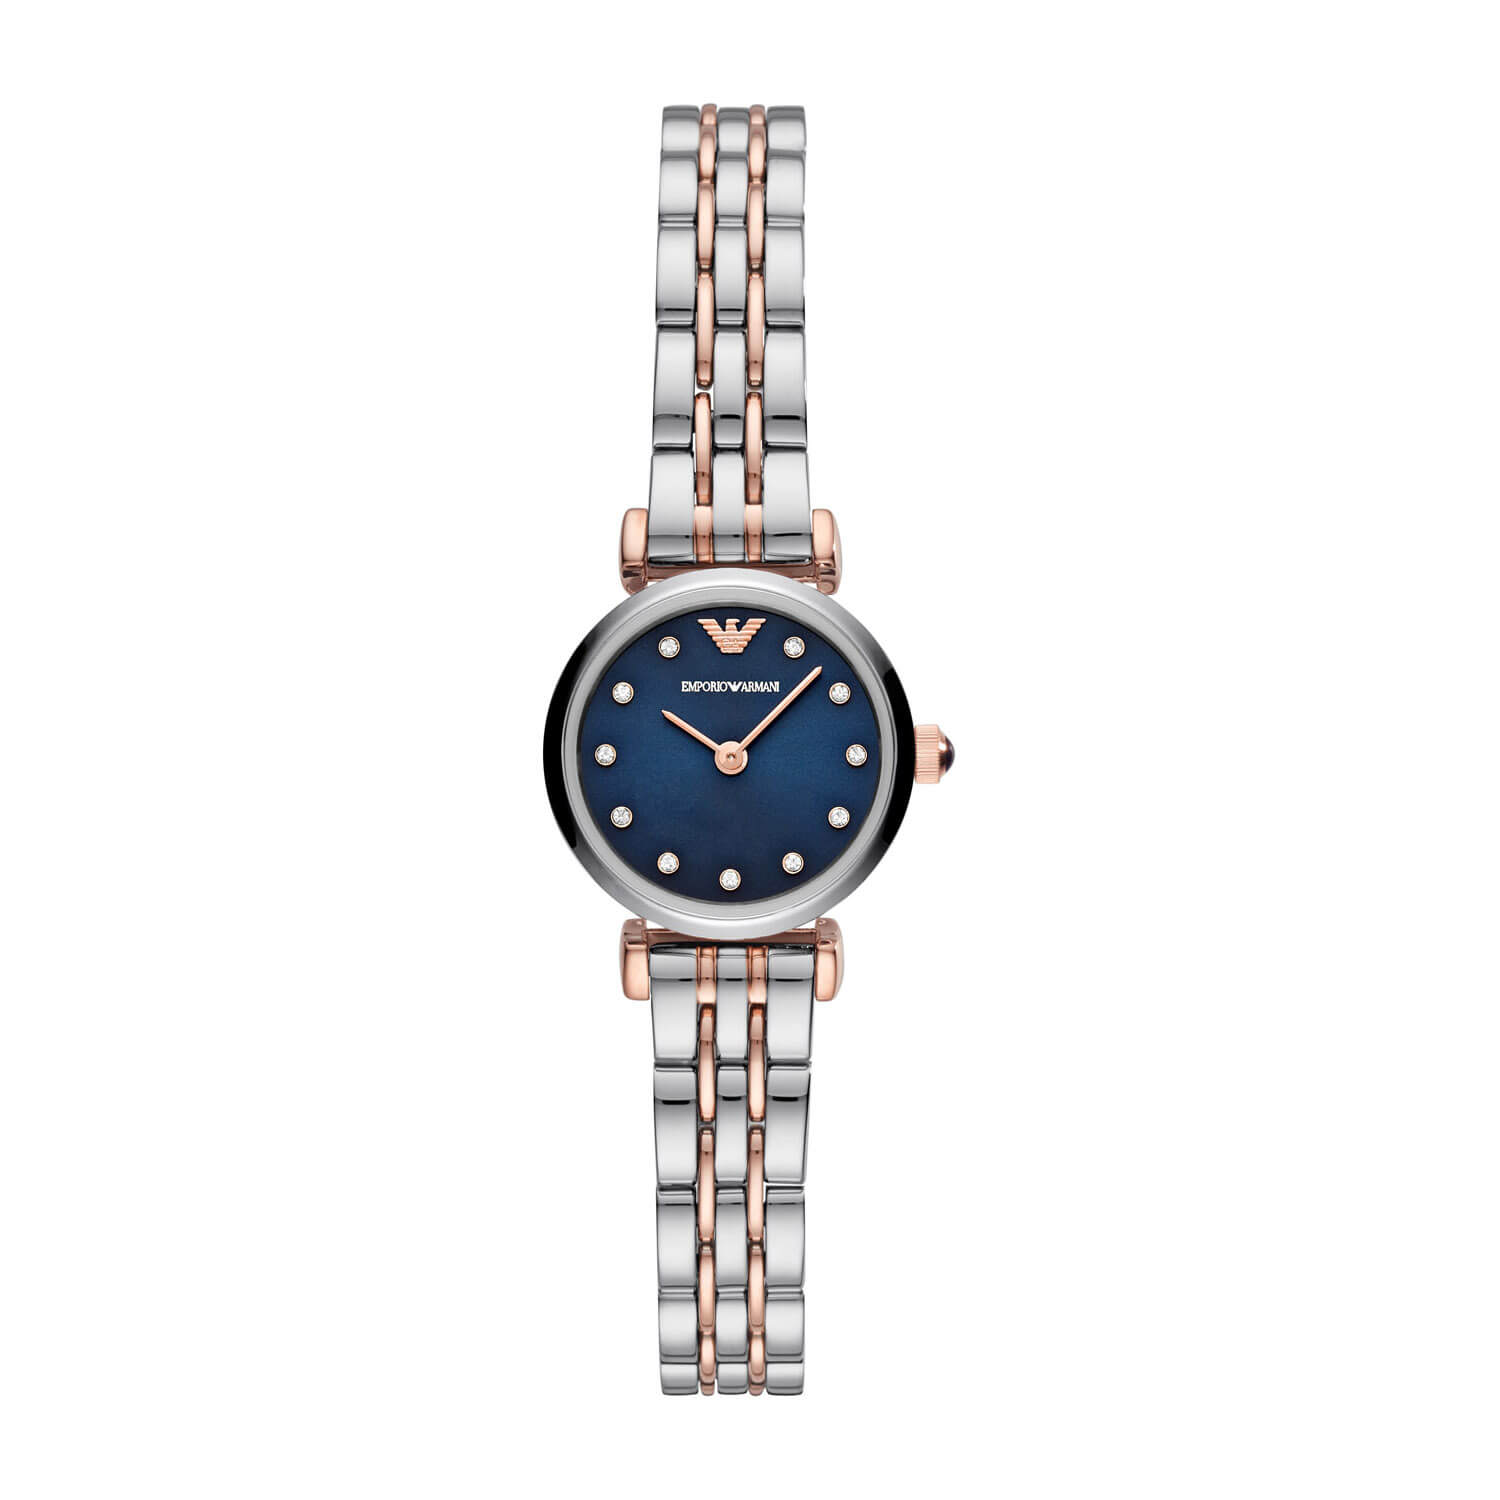 Emporio Armani T-Bar Blue Dial & Stainless Steel Bracelet 22mm Watch